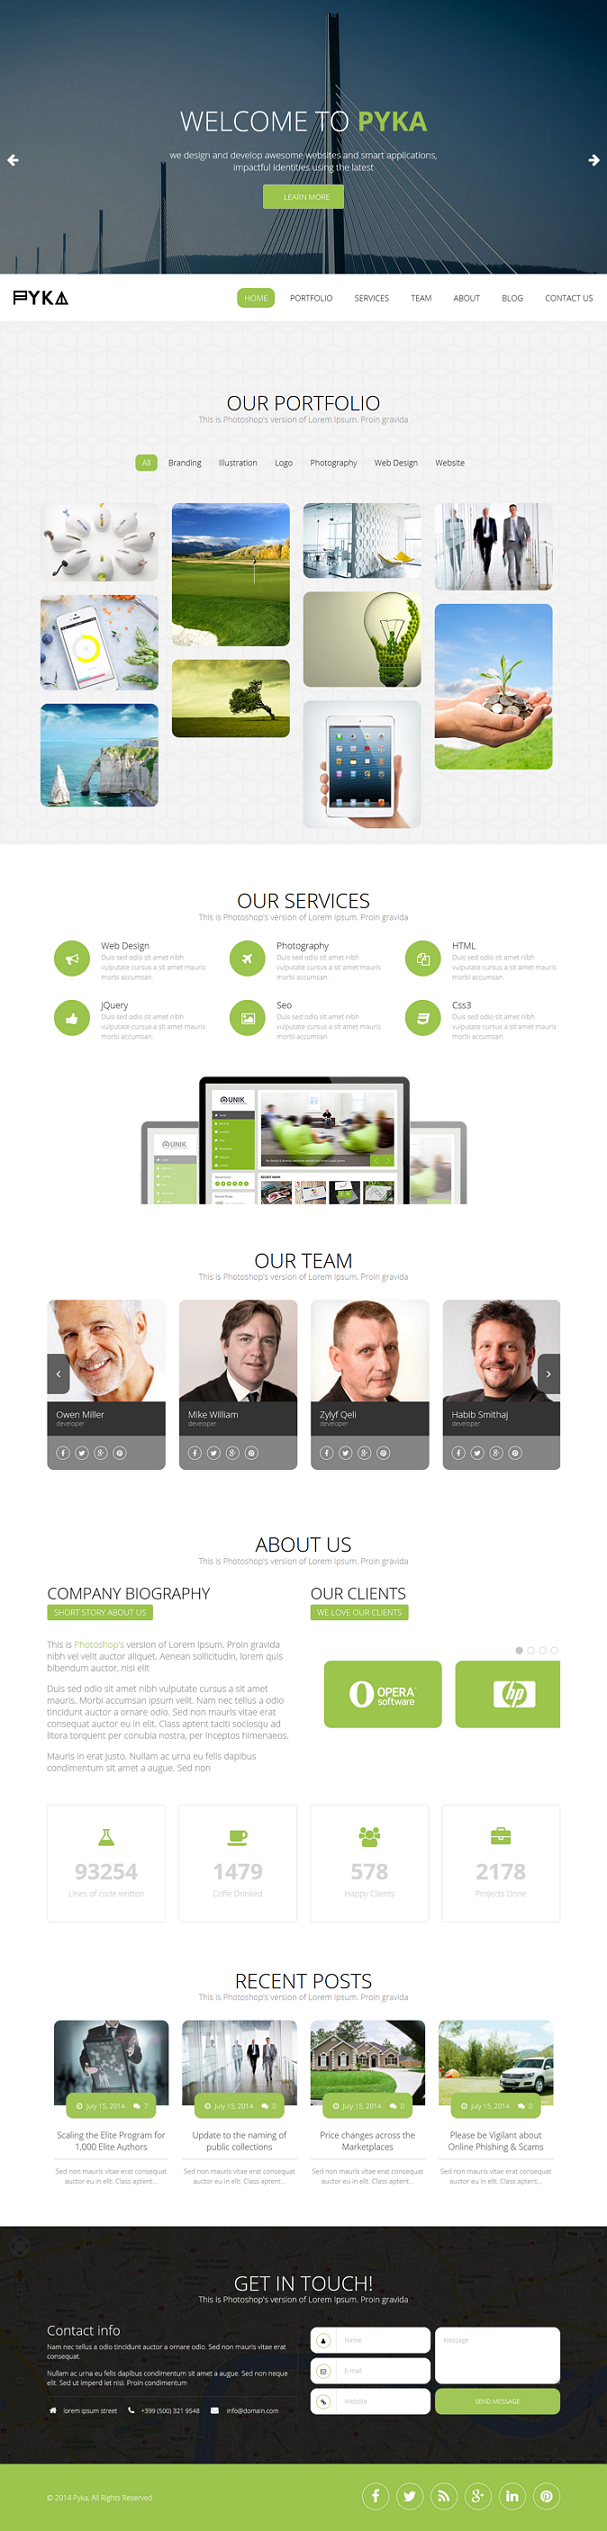 Pyka is an new one page responsive WordPress Theme. It has a live theme customizer, powerful adm ...